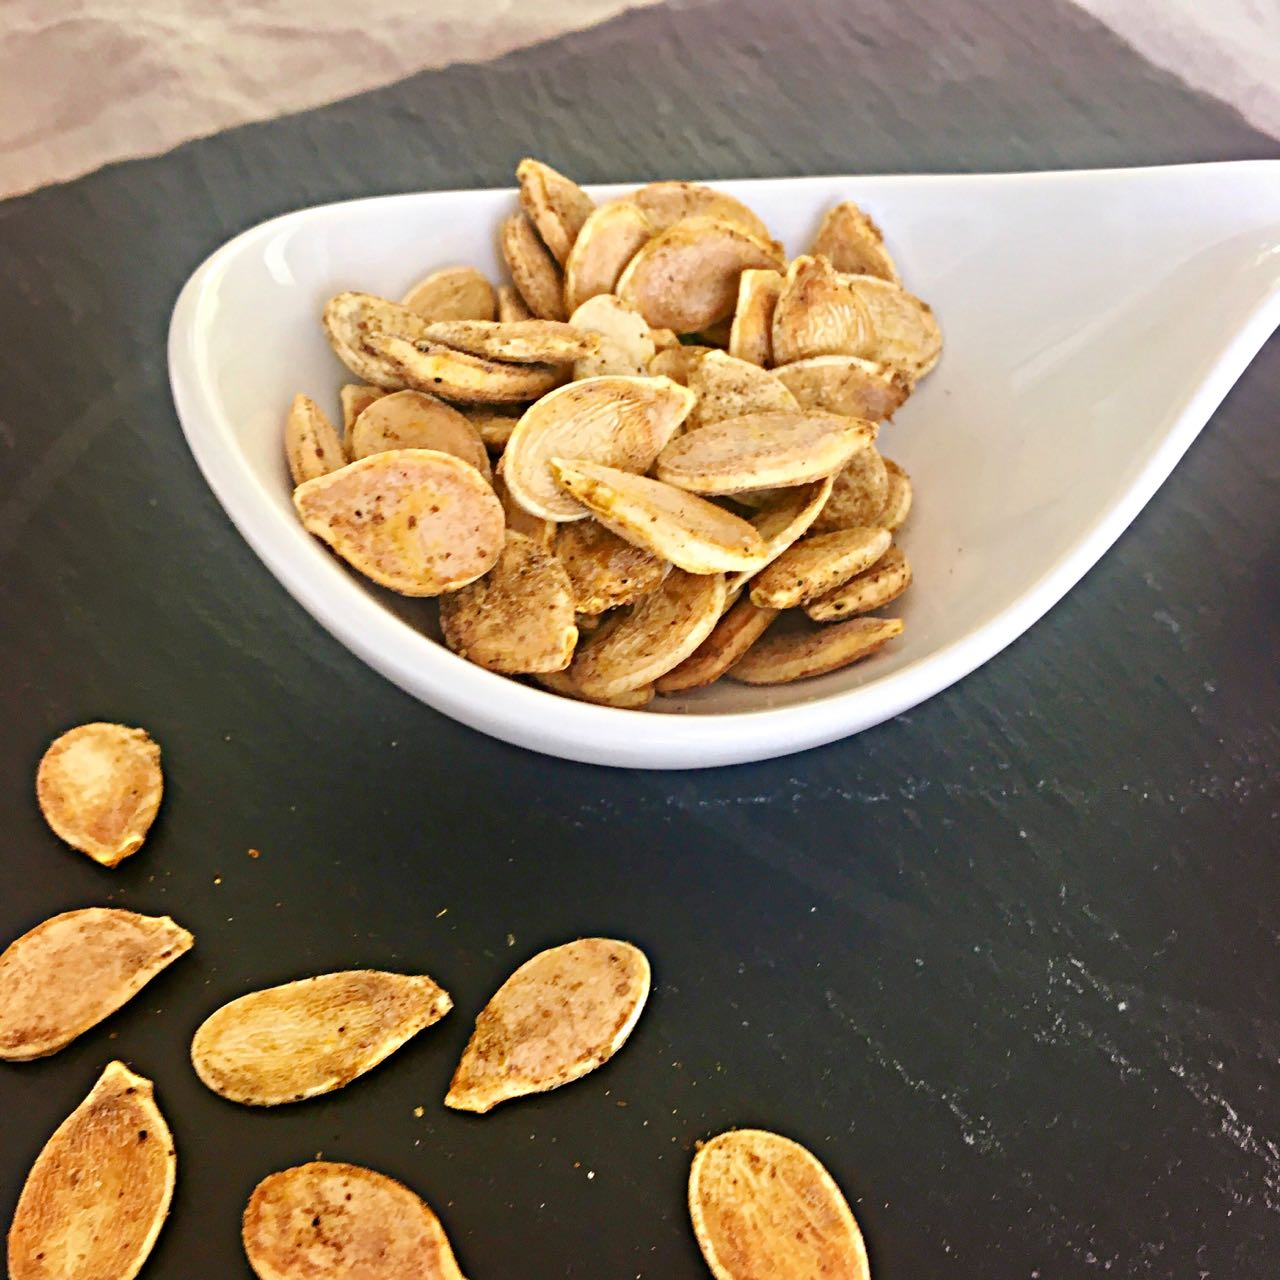 Spicy Toasted Pumpkin or Squash Seeds